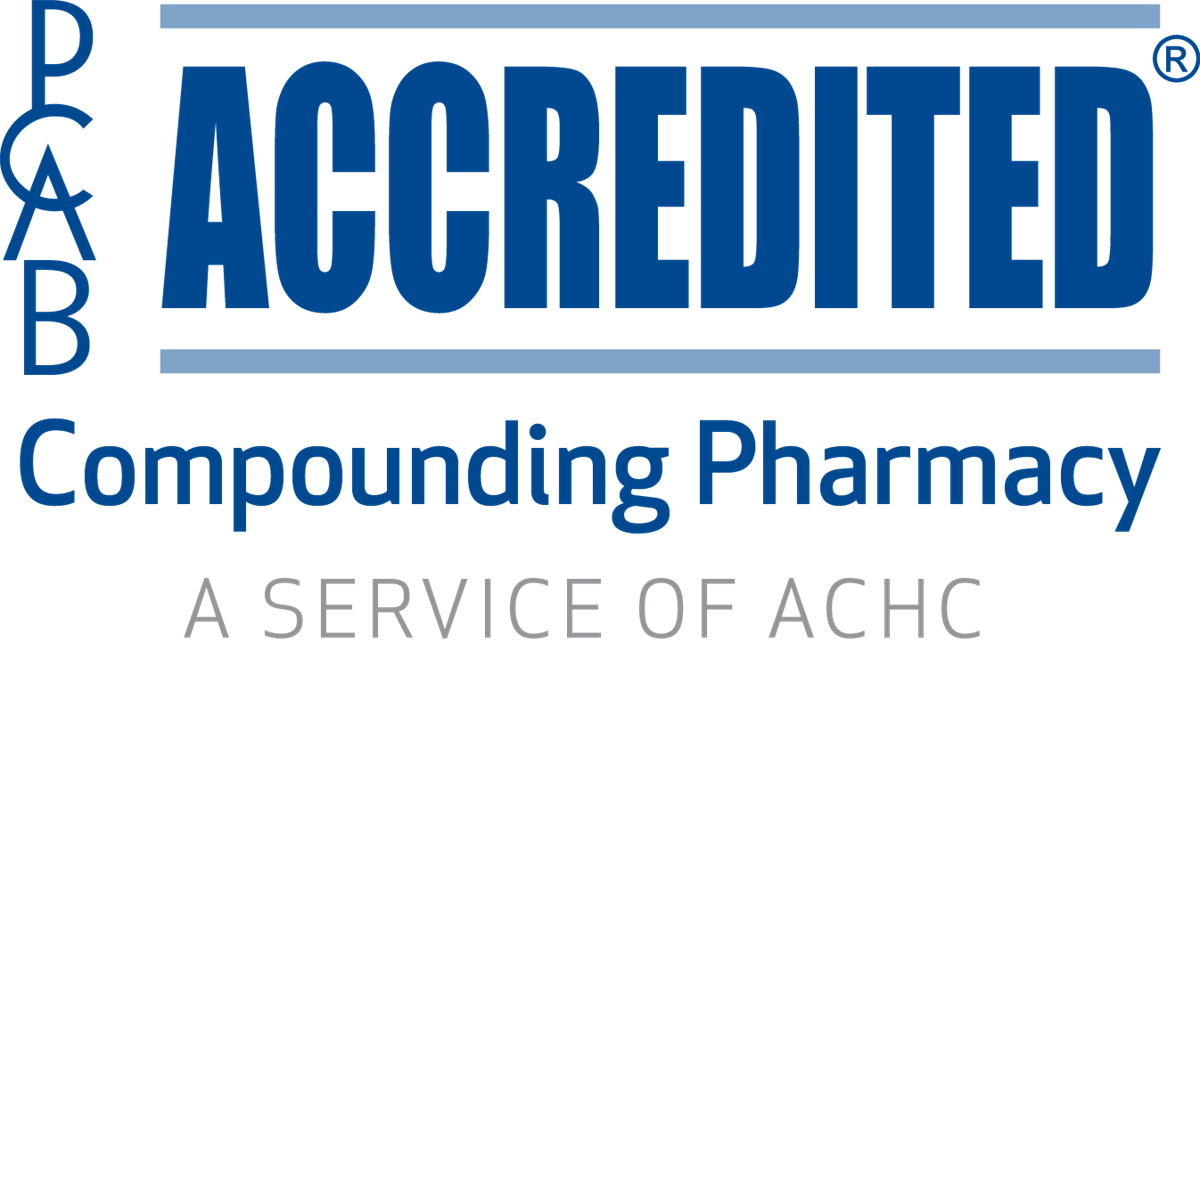 Asti's Pharmacy of South Hills is PCAB Accredited